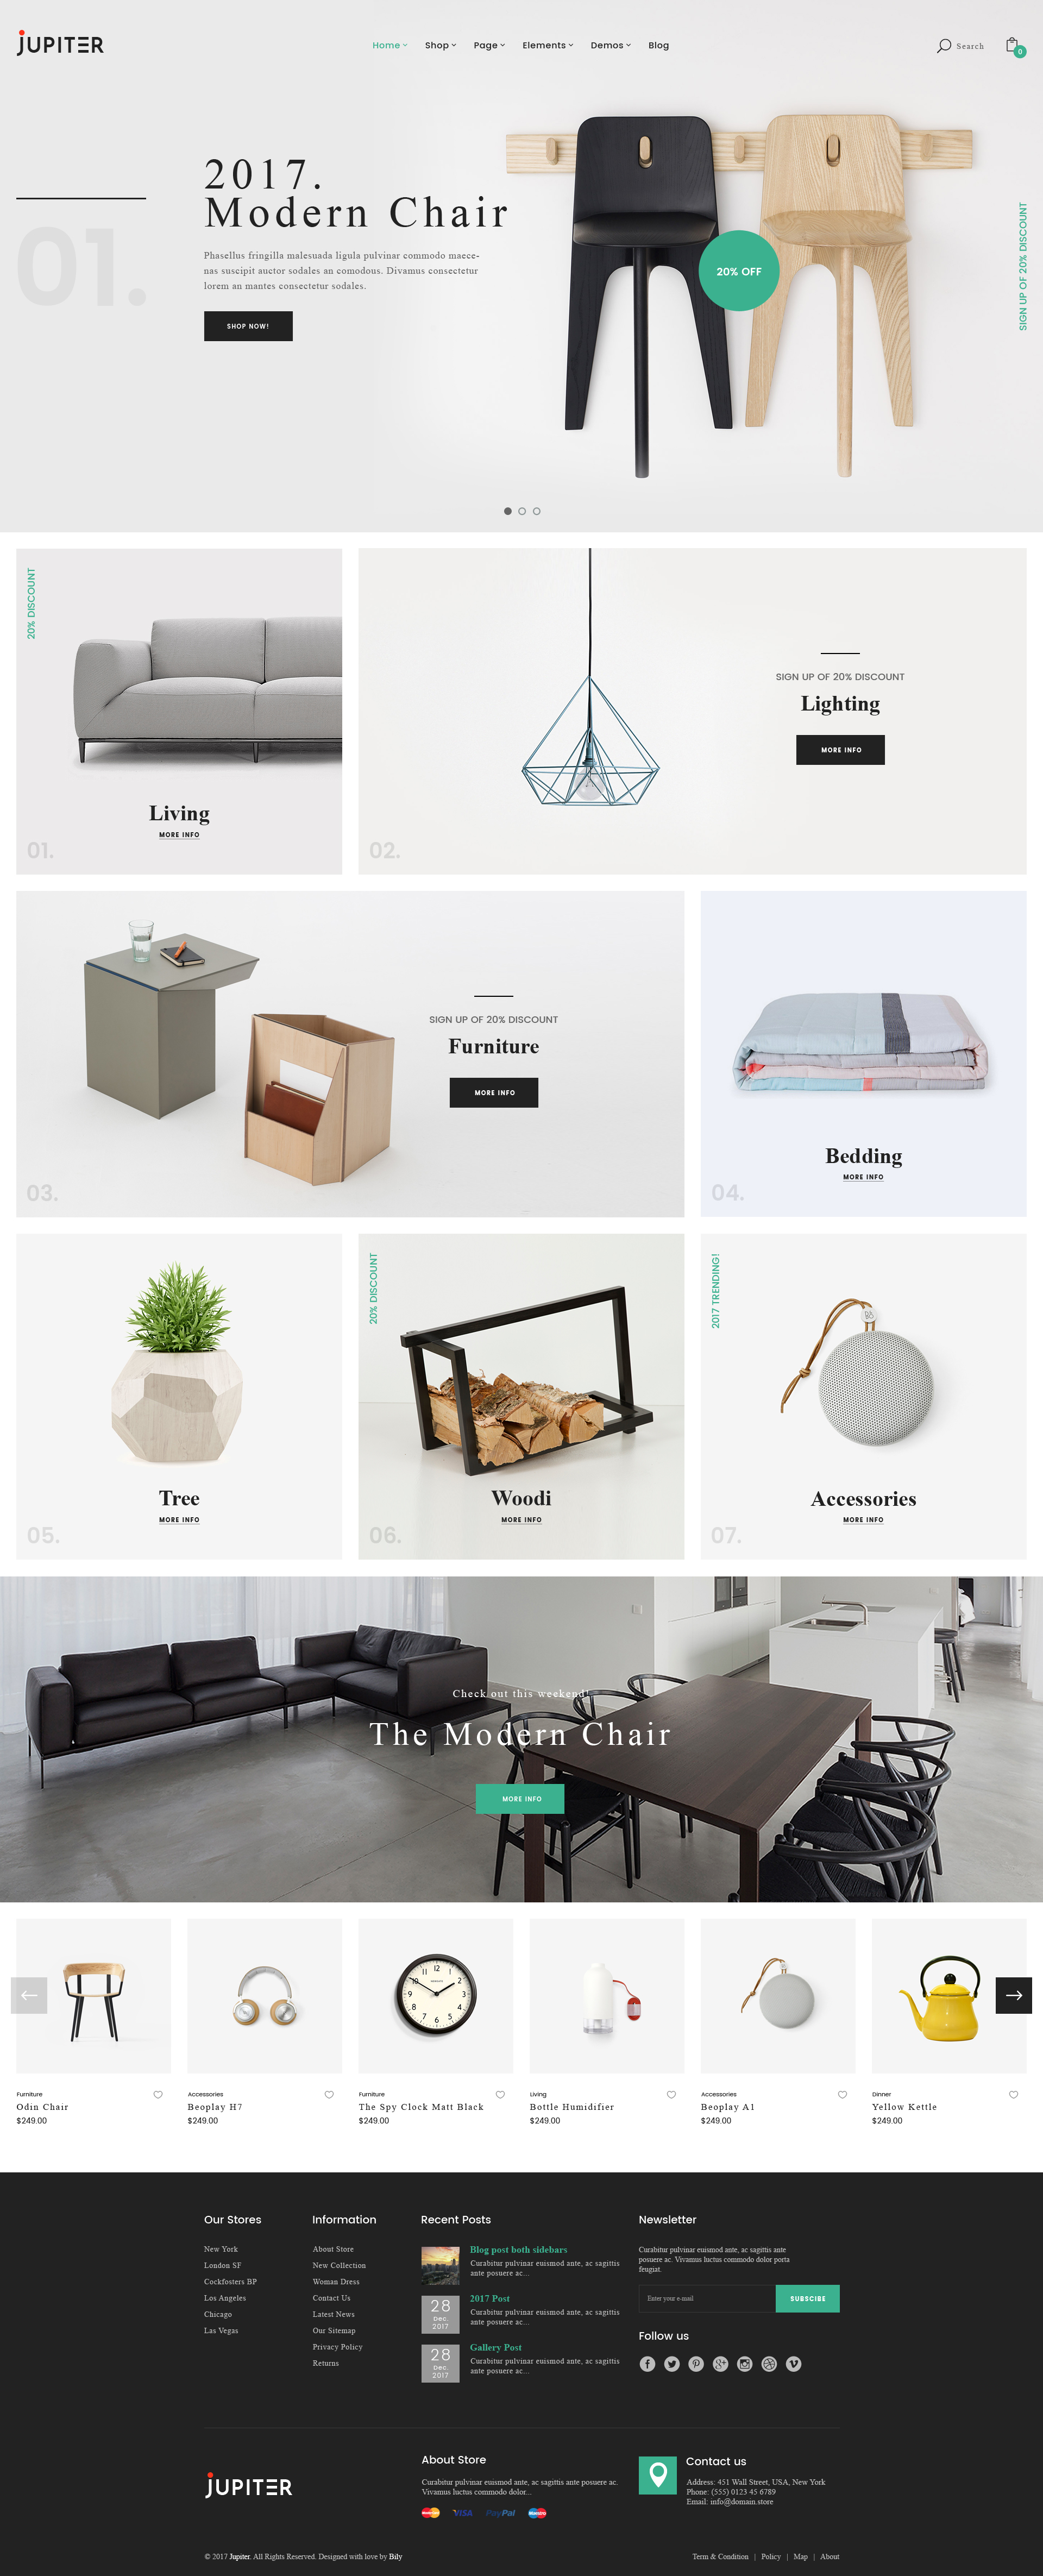 Jupiter Furniture eCommerce PSD Template by bily | ThemeForest